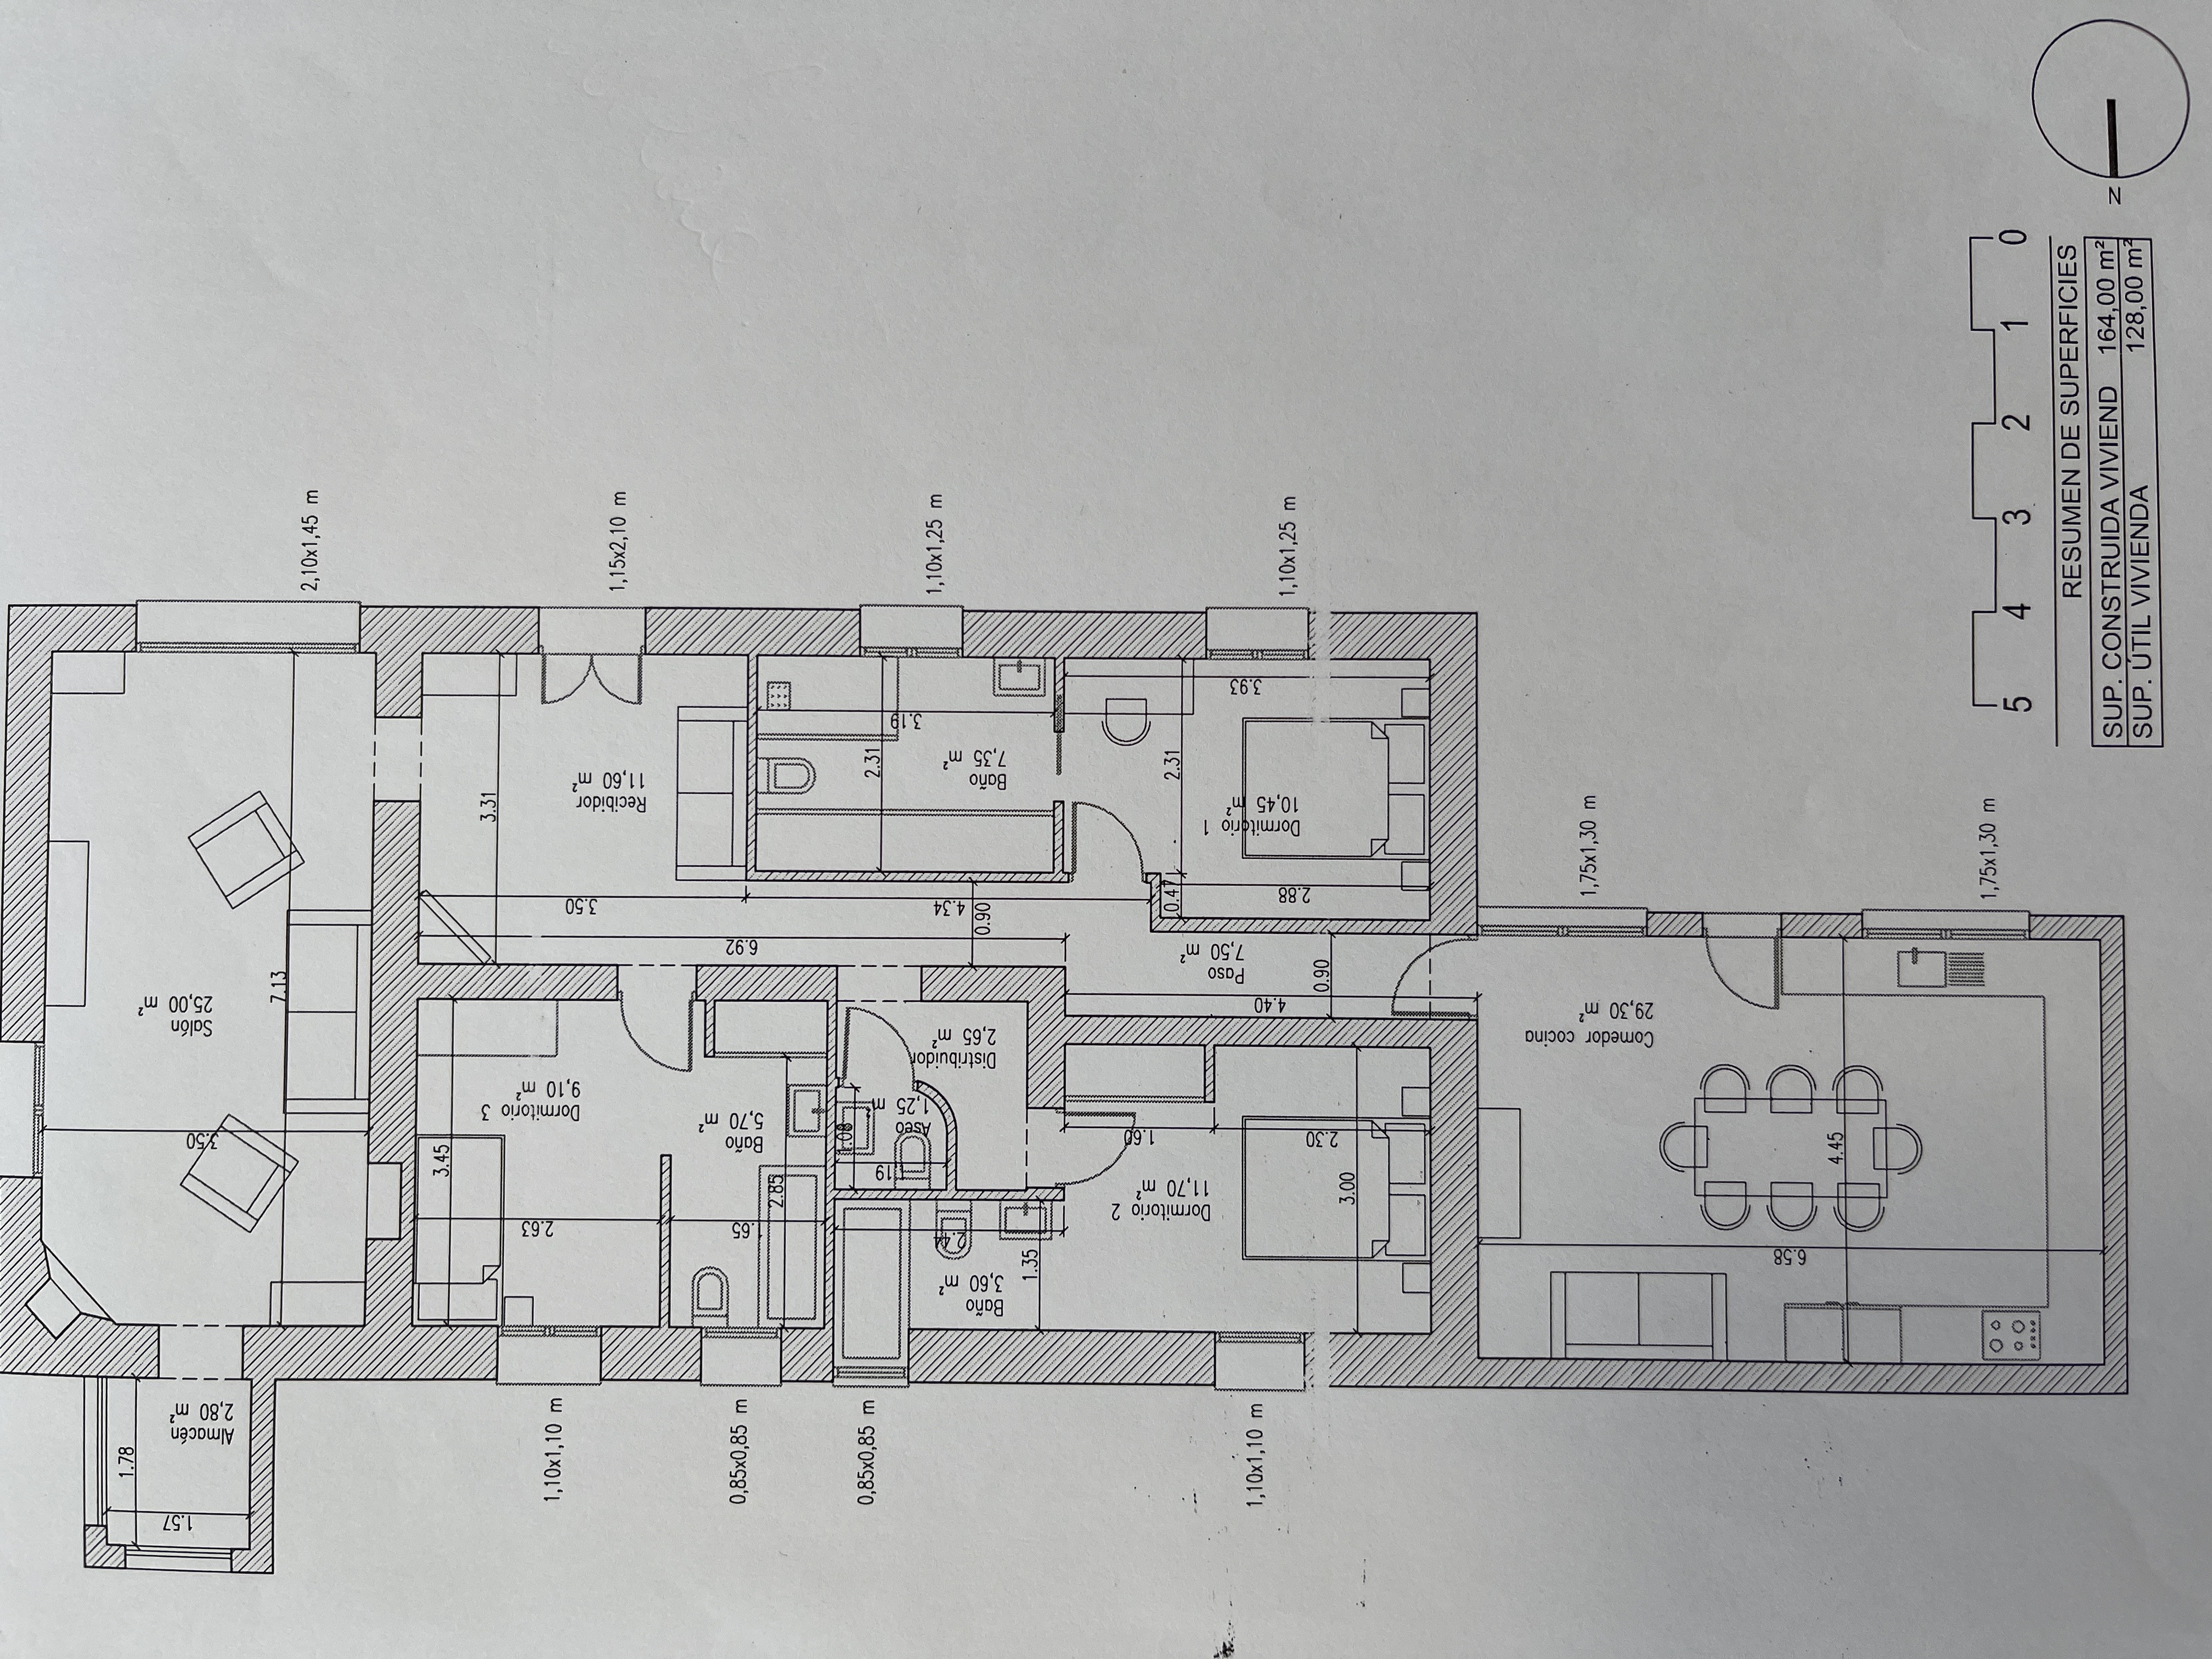 Floor plan for Rustic property ref 3498 for sale in Avileses Spain - Quality Homes Costa Cálida